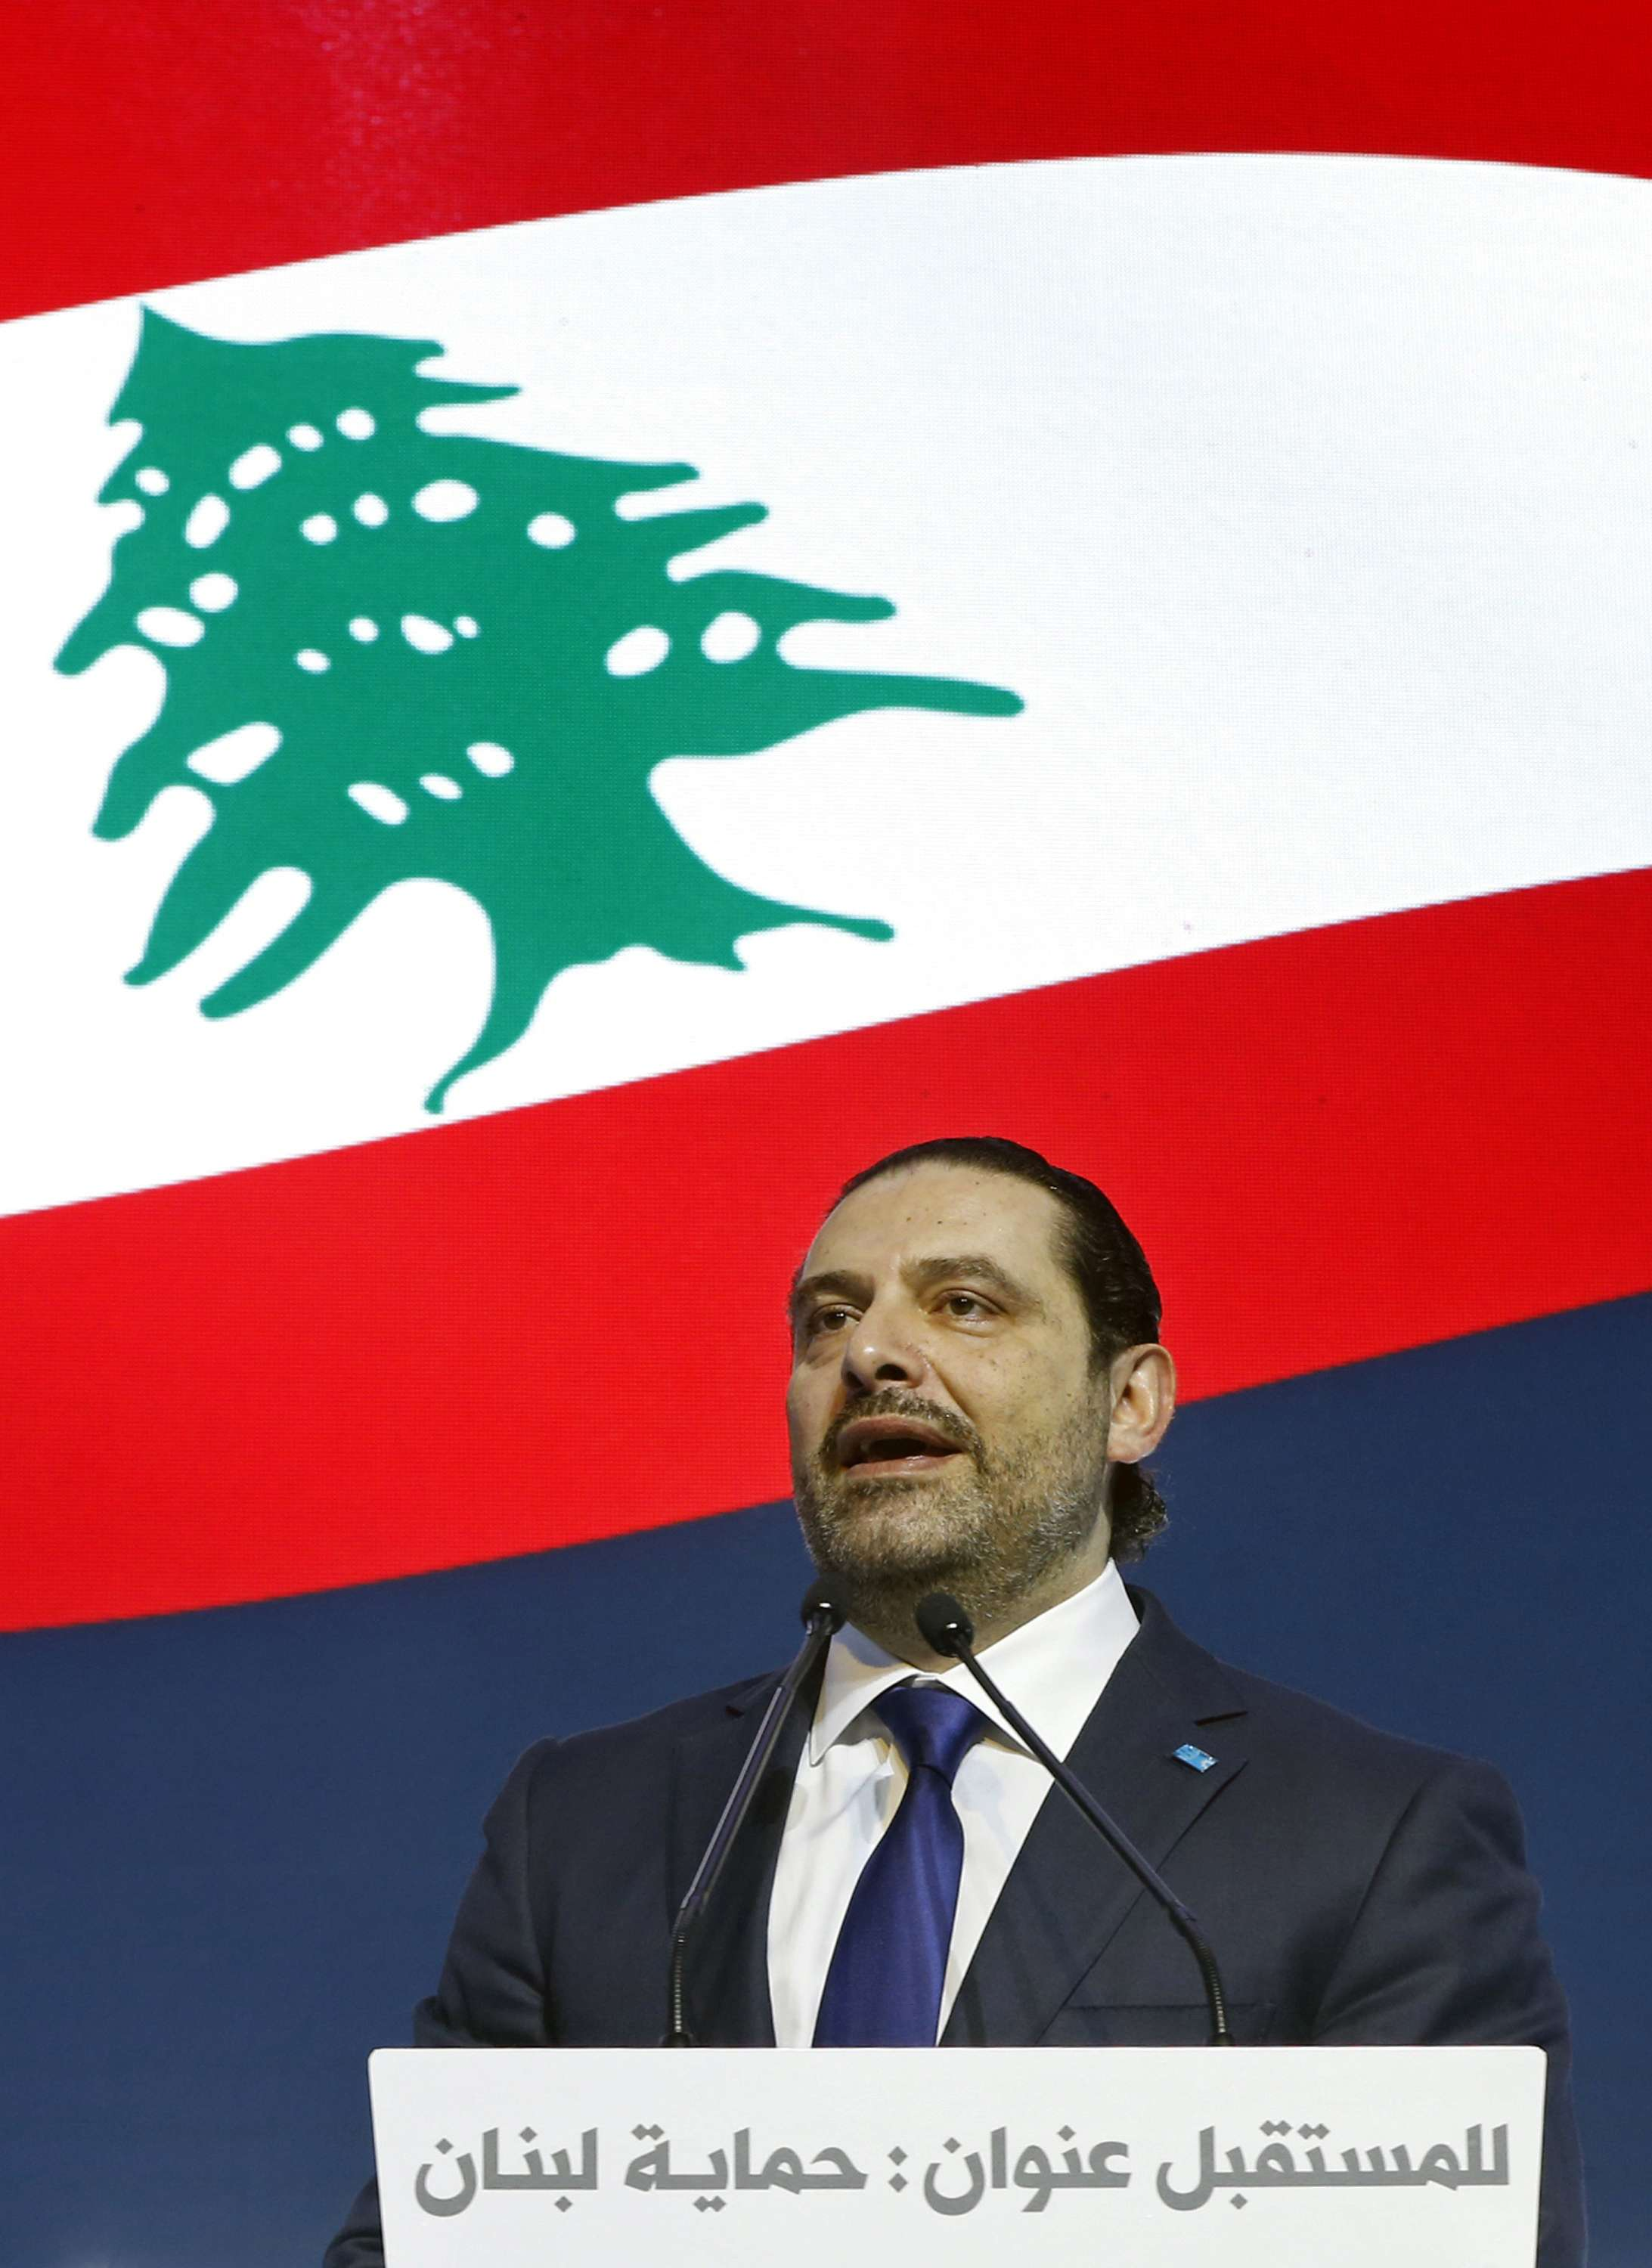 Lebanese Prime Minister Saad Hariri speaks during a ceremony to mark the 13th anniversary of the assassination of his father, on February 14. (AP)